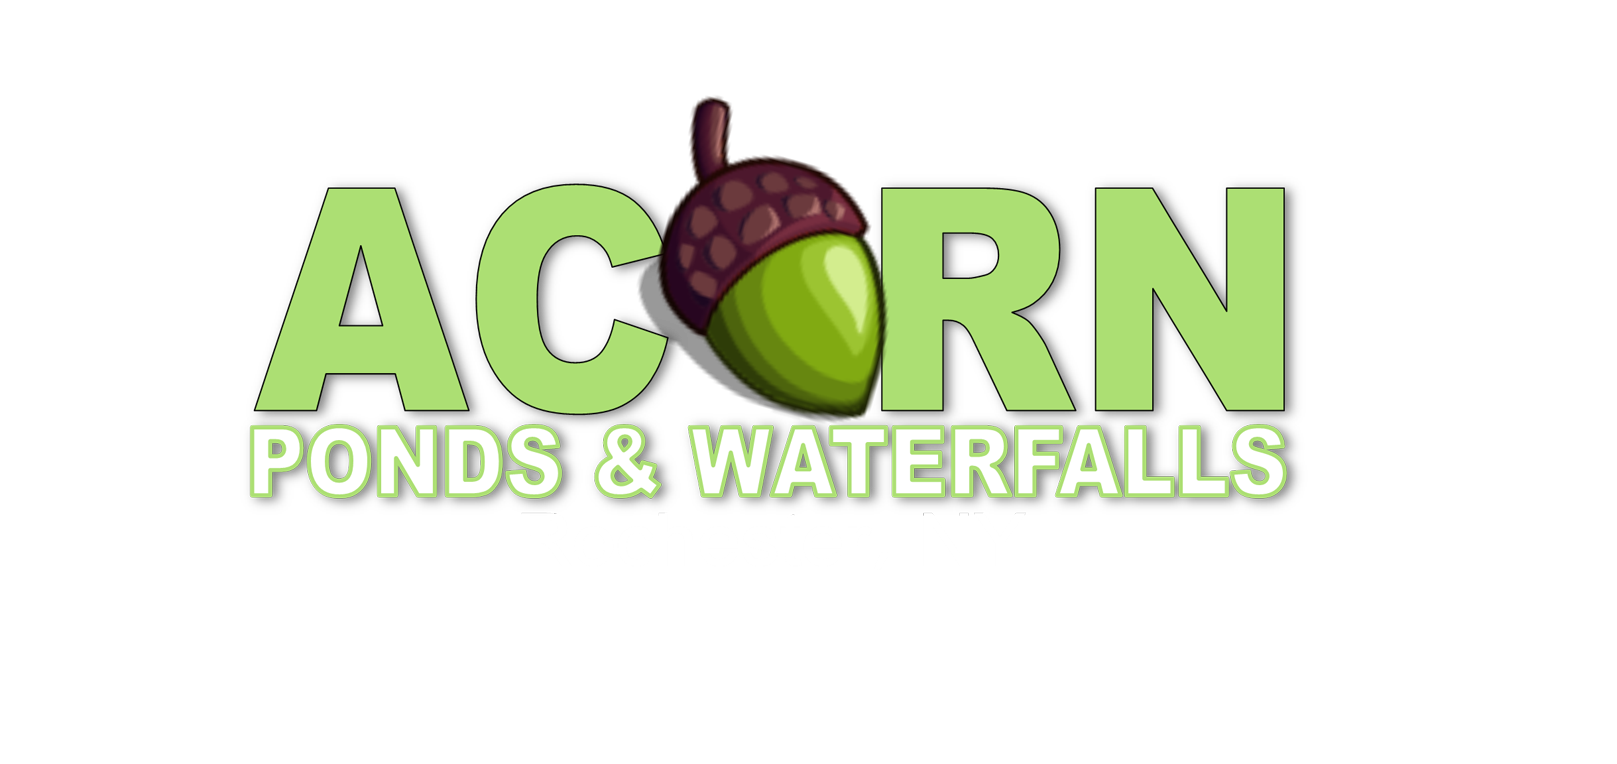 Waterfall-Garden Pond Repair Services In Rochester, Monroe County New York (NY)